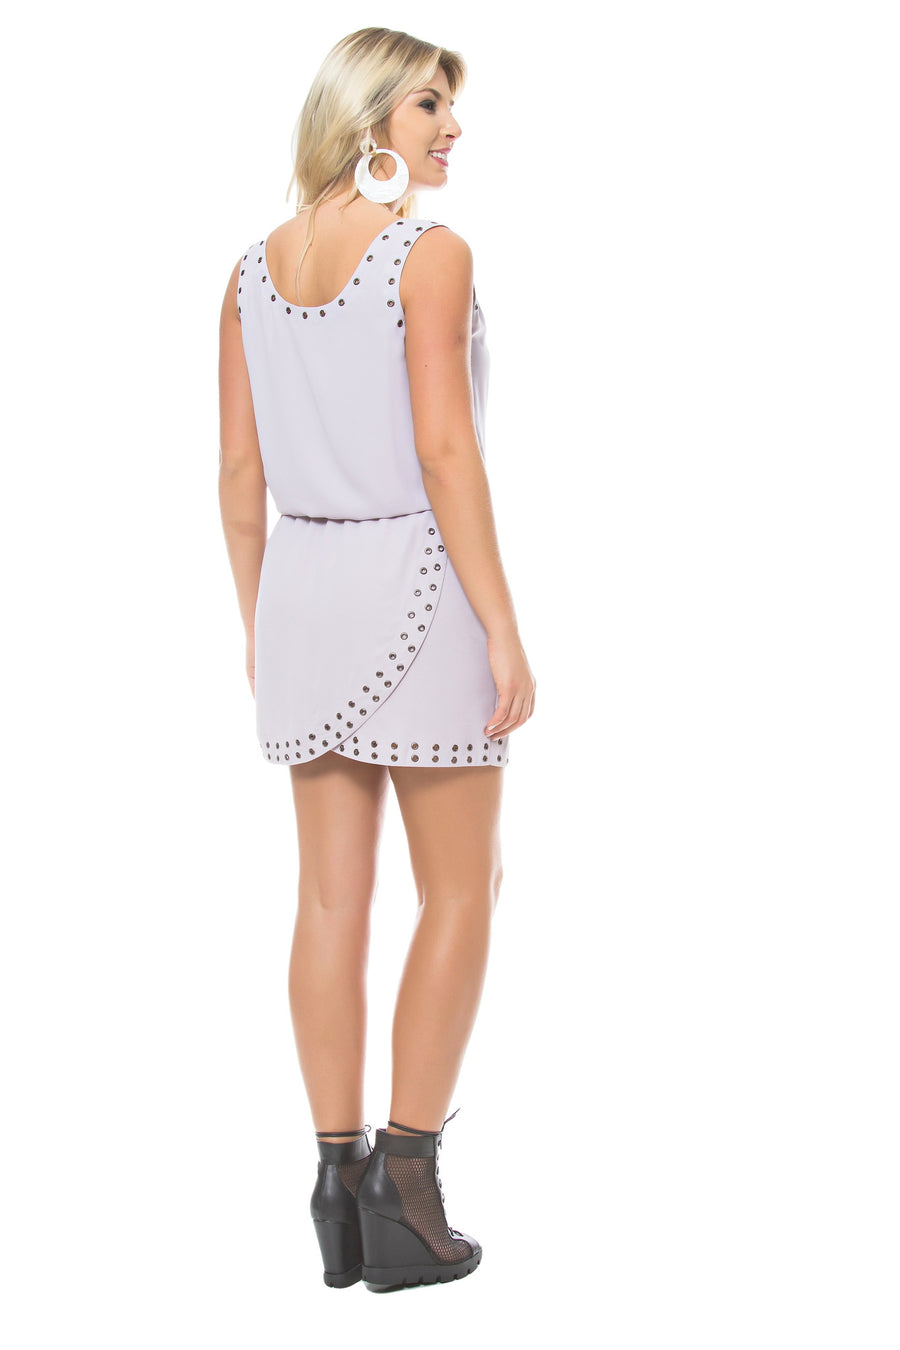 Grommet Embellished Dress